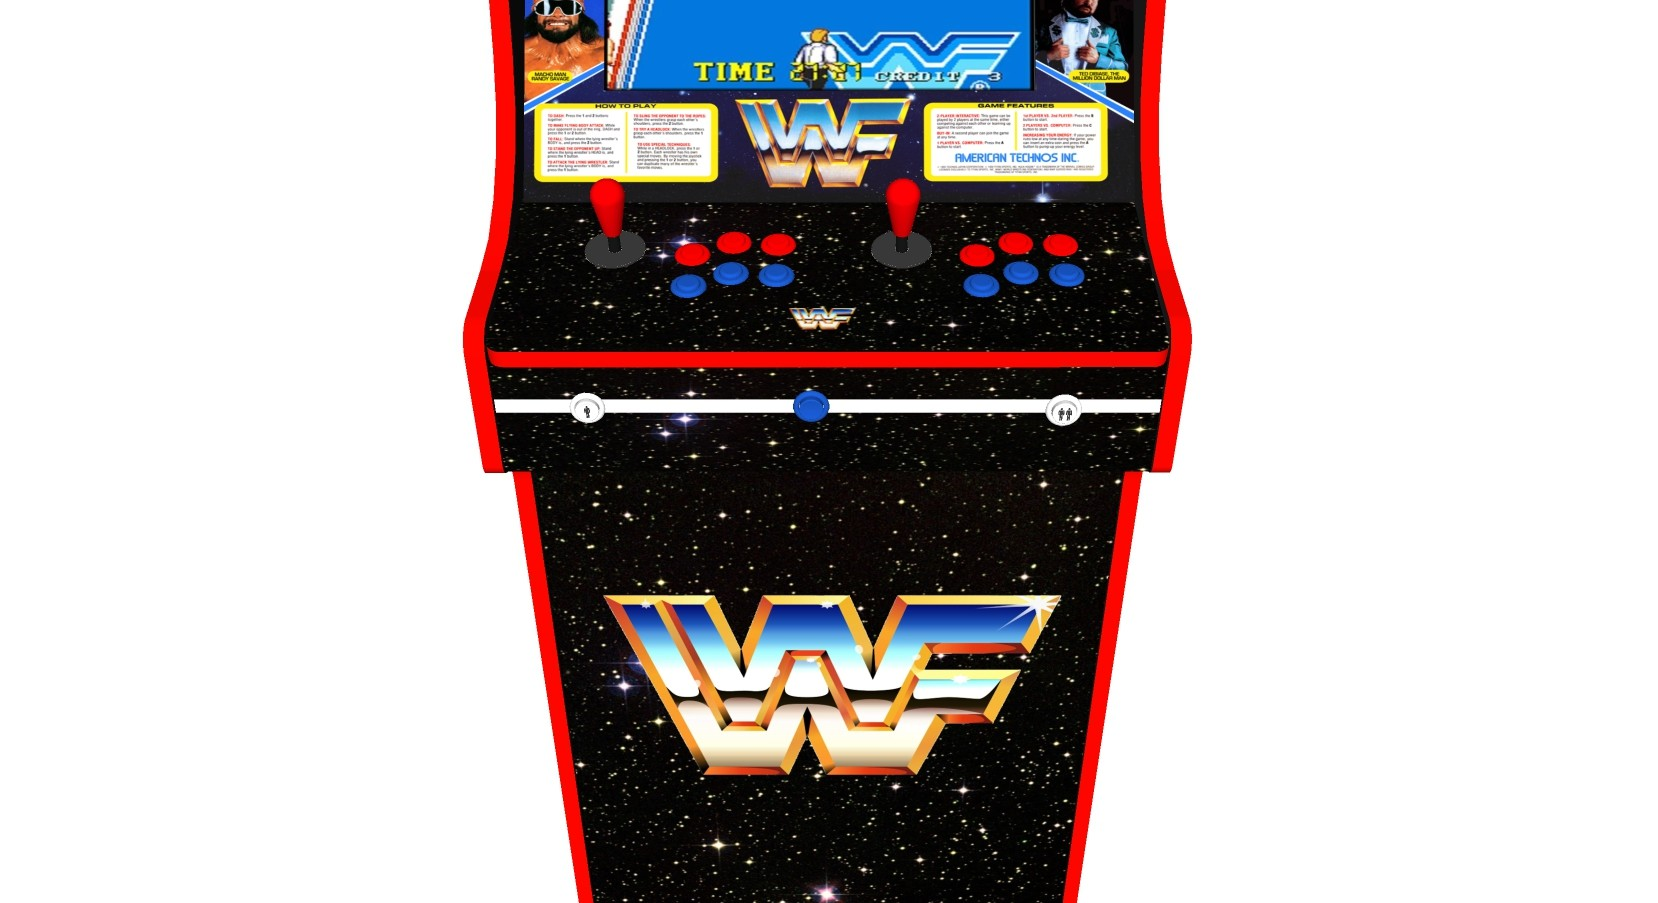 Retro Upright Arcade Machine 520 Games Wwf Superstars